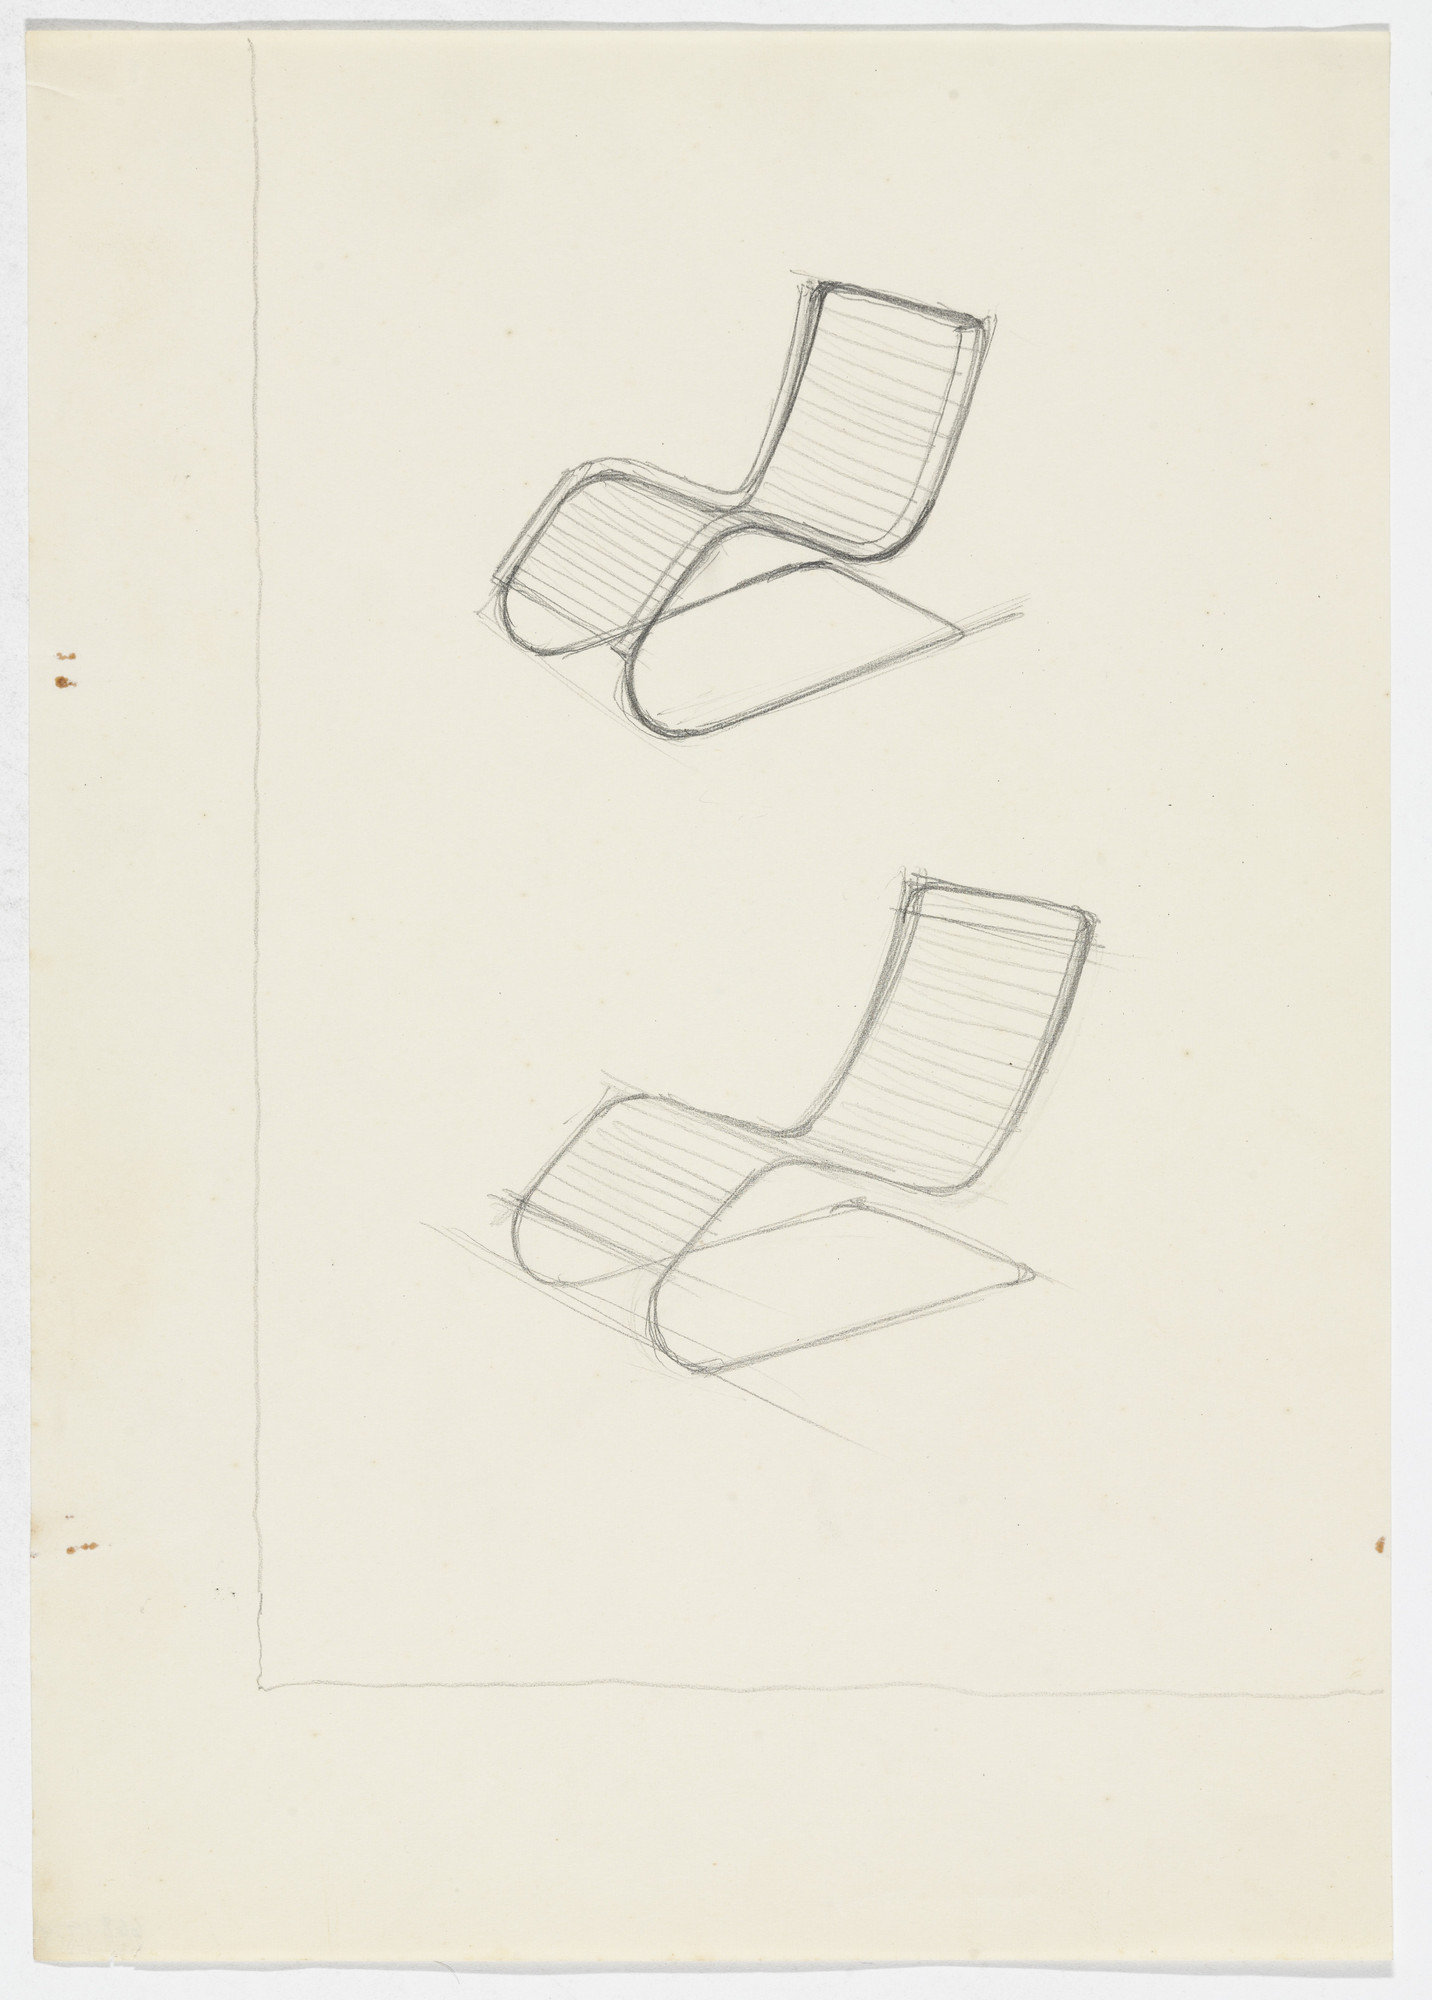 Ludwig Mies van der Rohe. MR100 Reclining Chair (Two perspective sketches). early 1930s